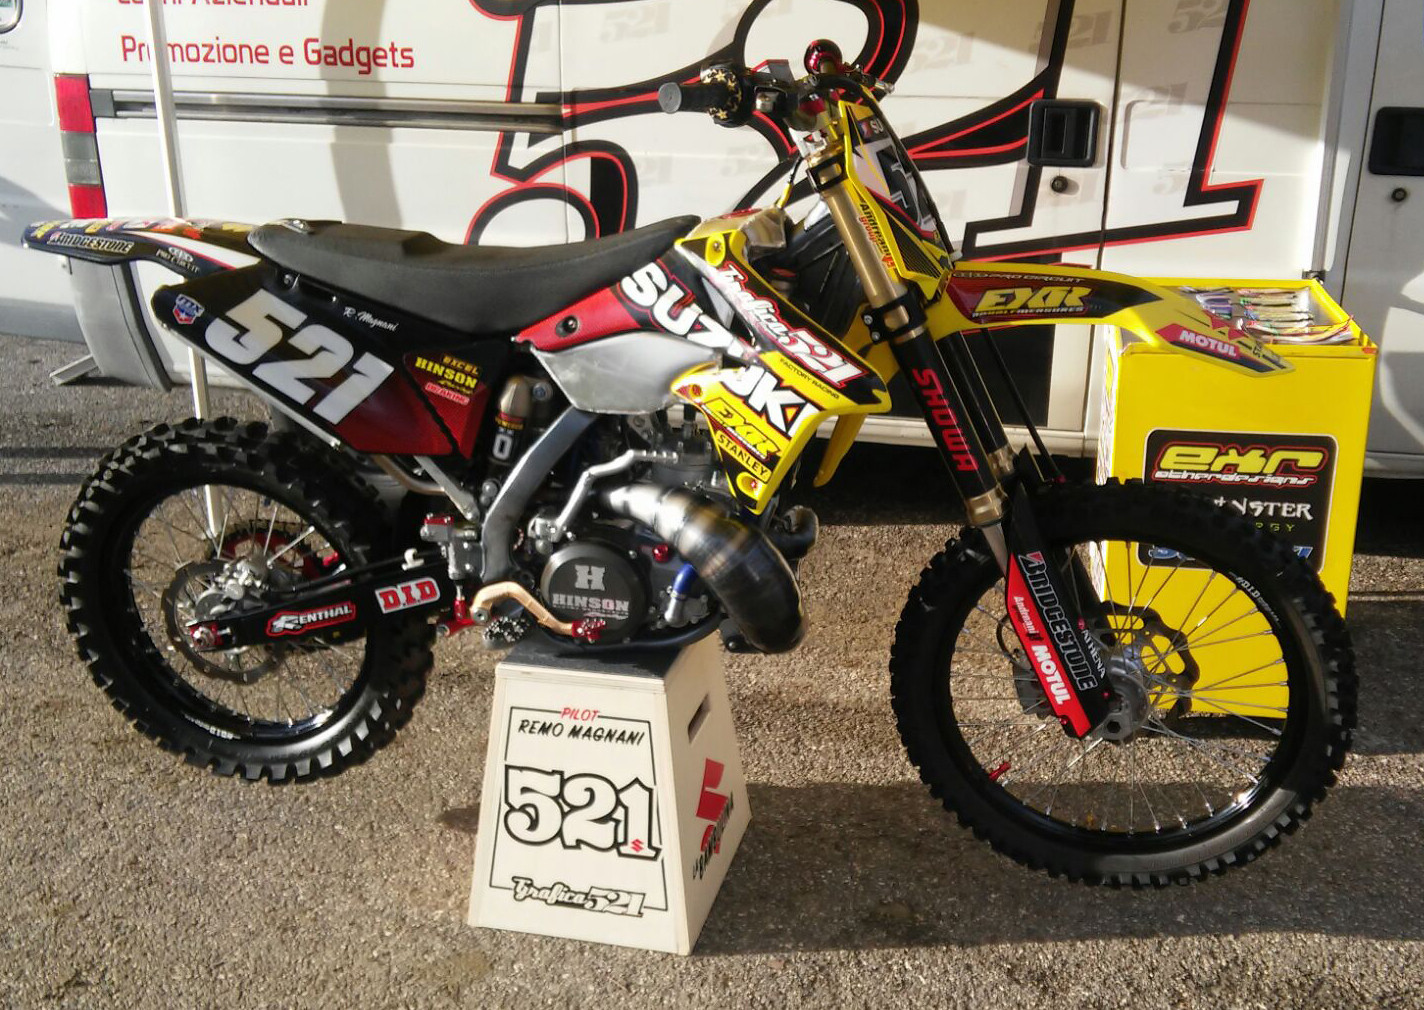 10df15c29-c8fe-45bc-943c-4693a16ef9cb - effettoxtremo - Motocross Pictures - Vital MX